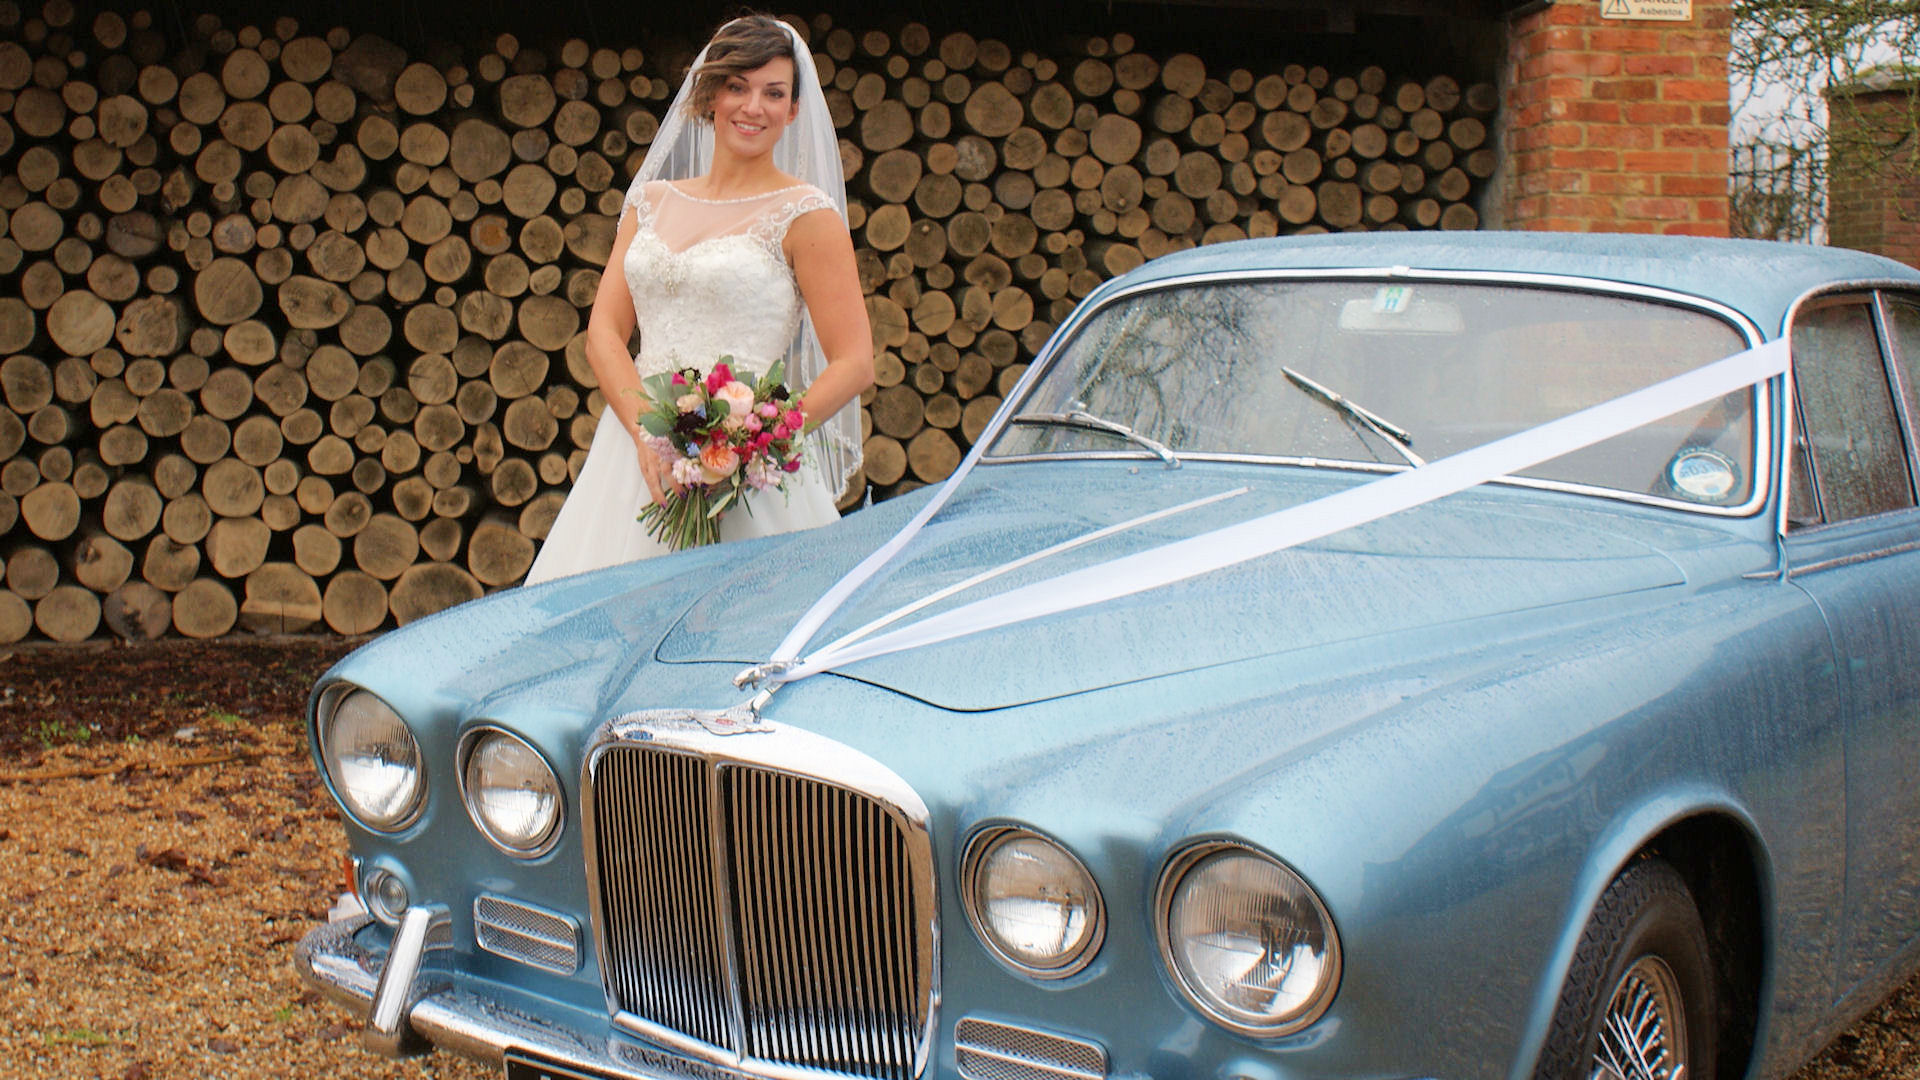 Our bride just really loves this car&nbsp;&nbsp;&nbsp; - &nbsp;&nbsp;&nbsp;<small>&copy;&nbsp;&nbsp; David Jones&nbsp;</small>